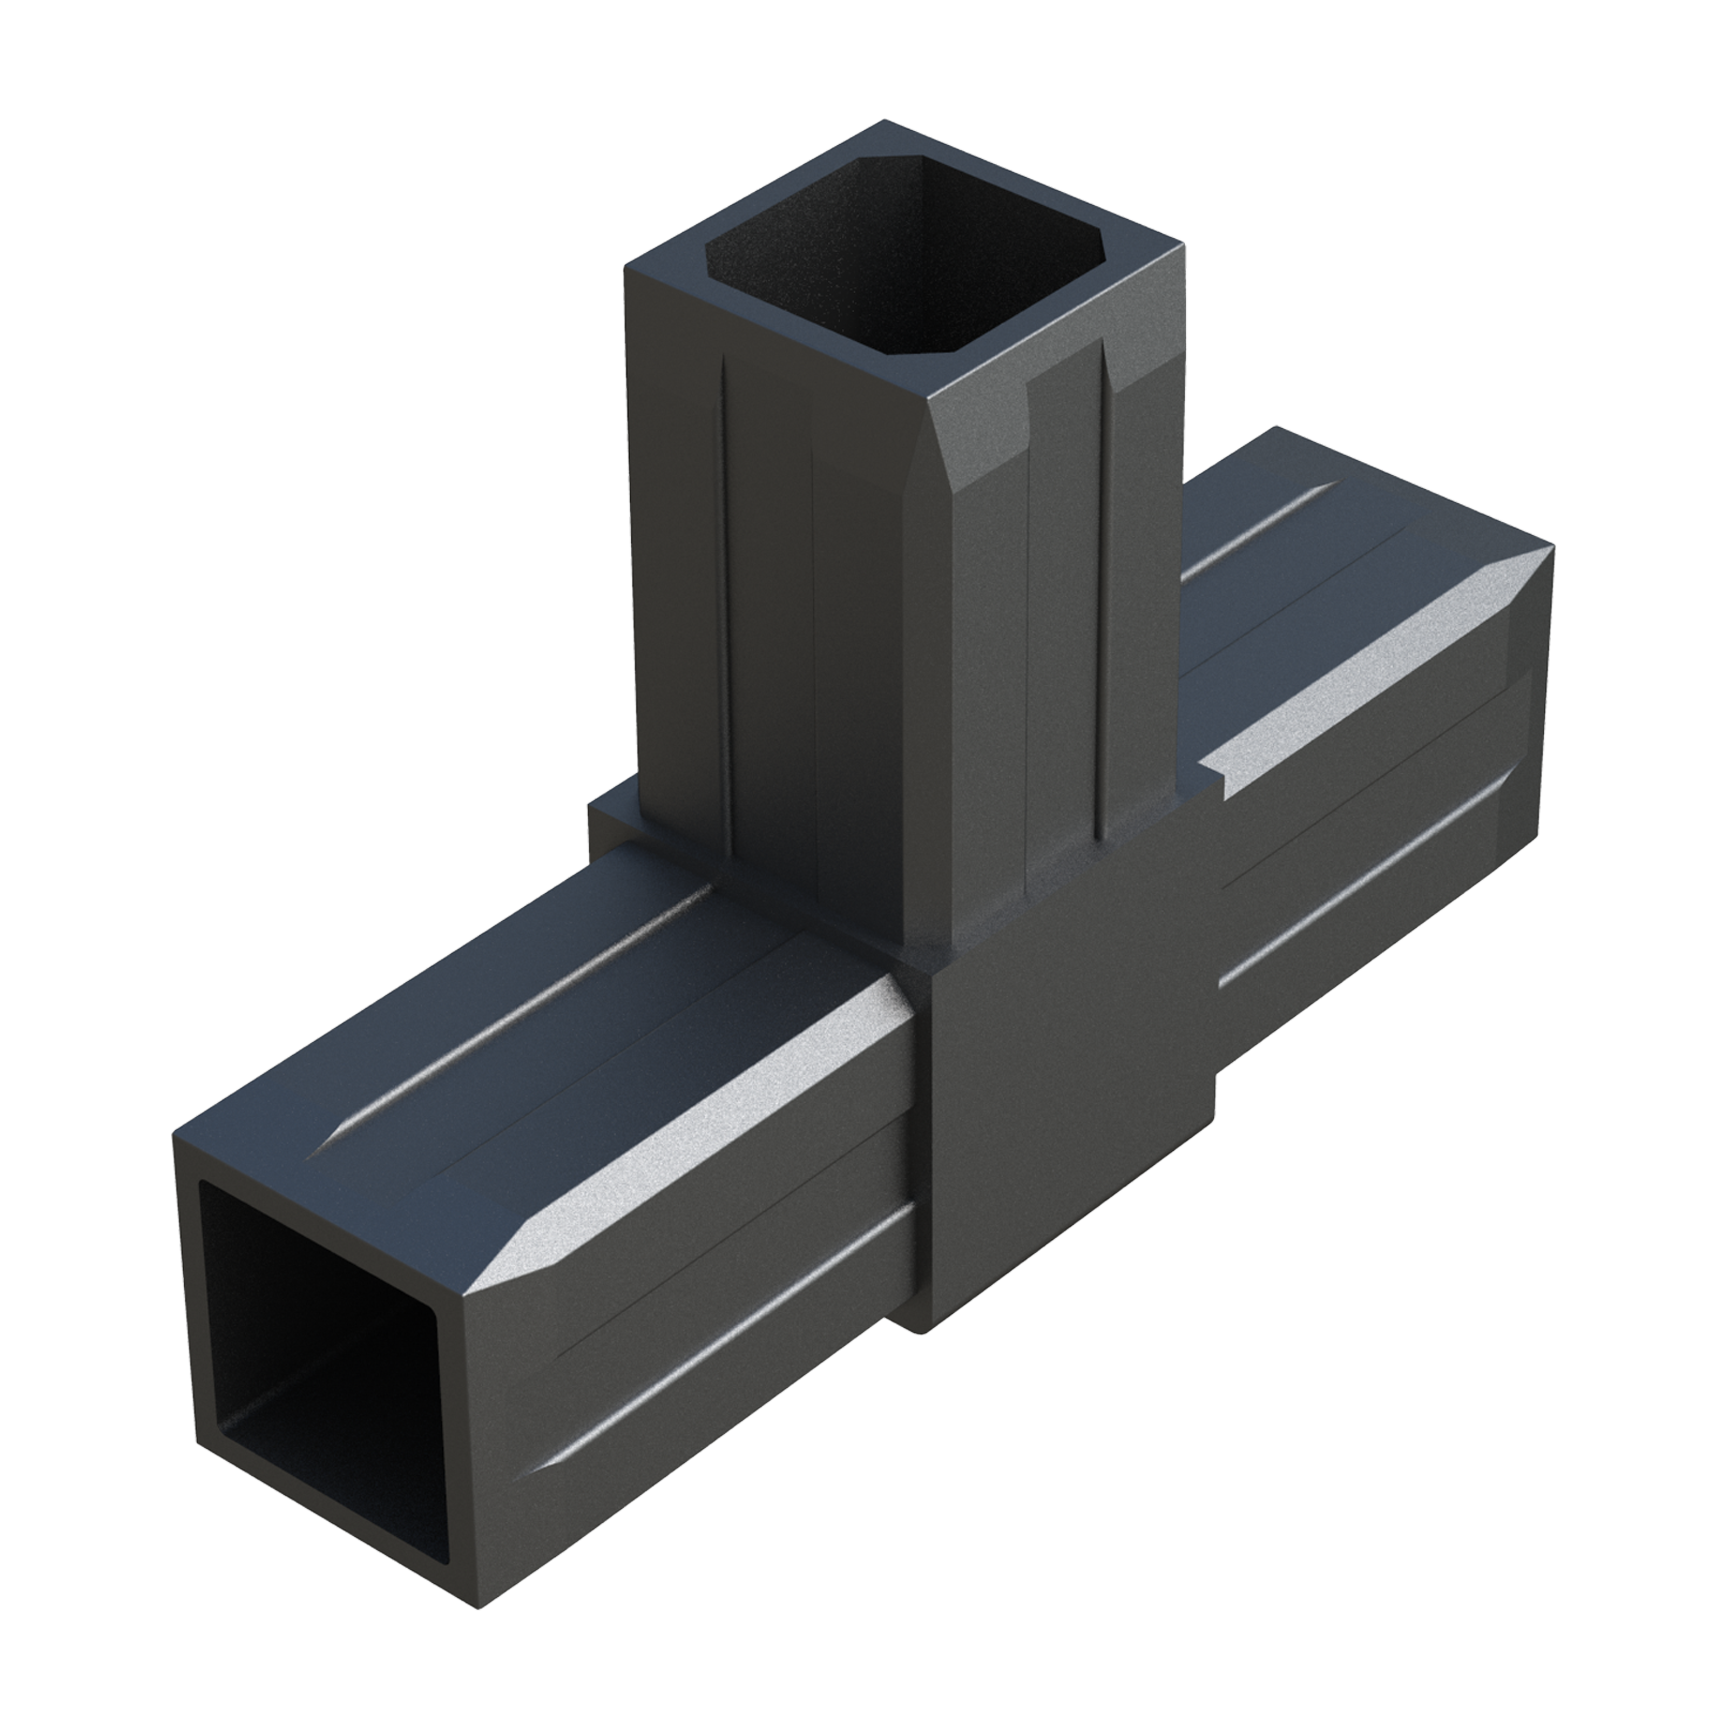 T connector for square tubes